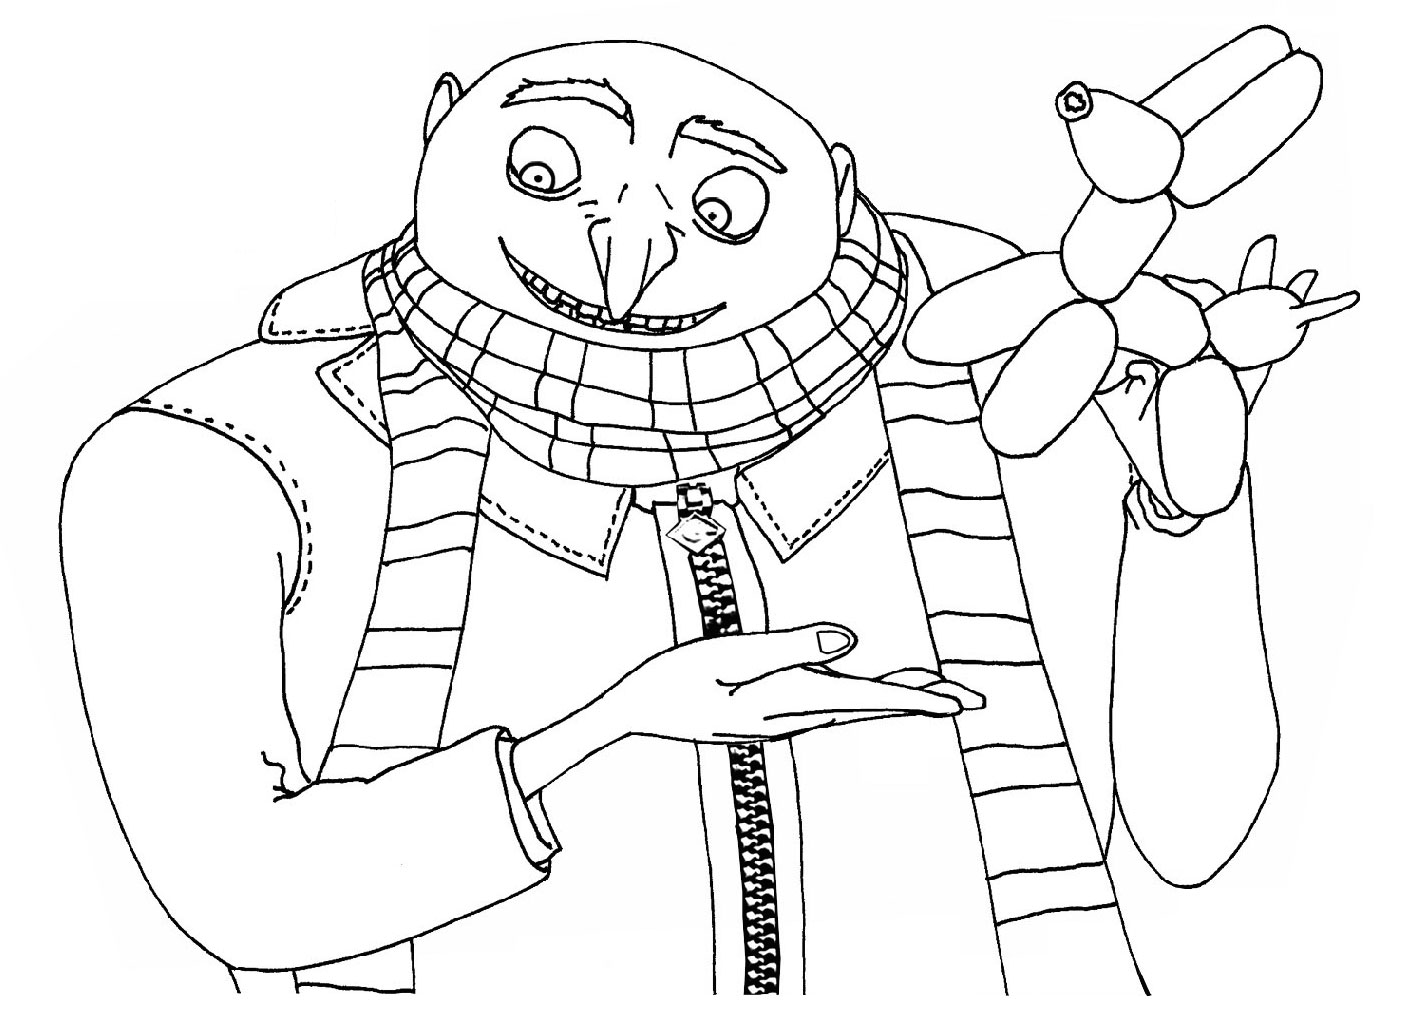 free despicable me coloring pages printable despicable me coloring pages for kids cool2bkids pages despicable coloring me free